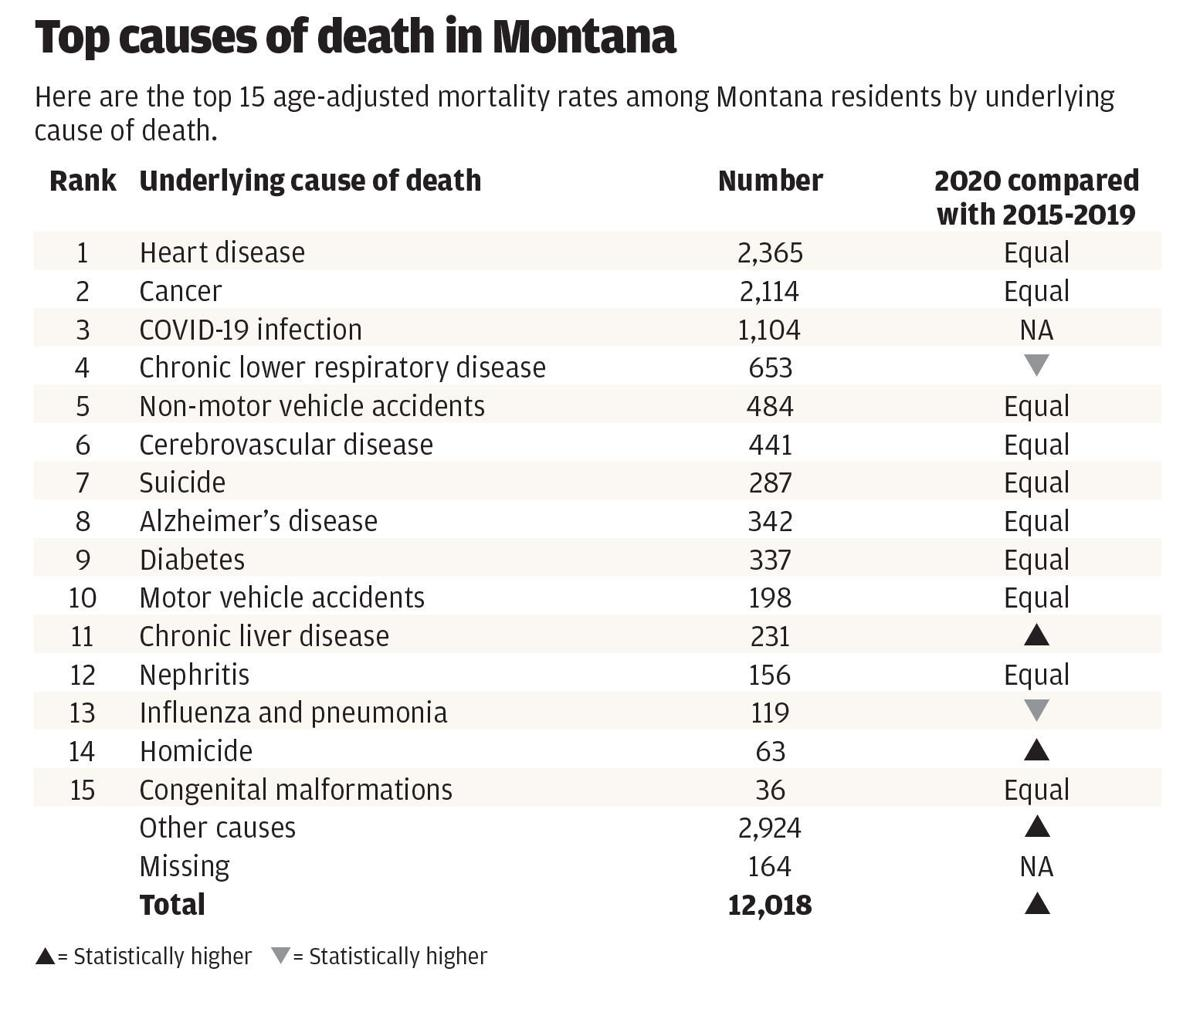 Top causes of death in Montana